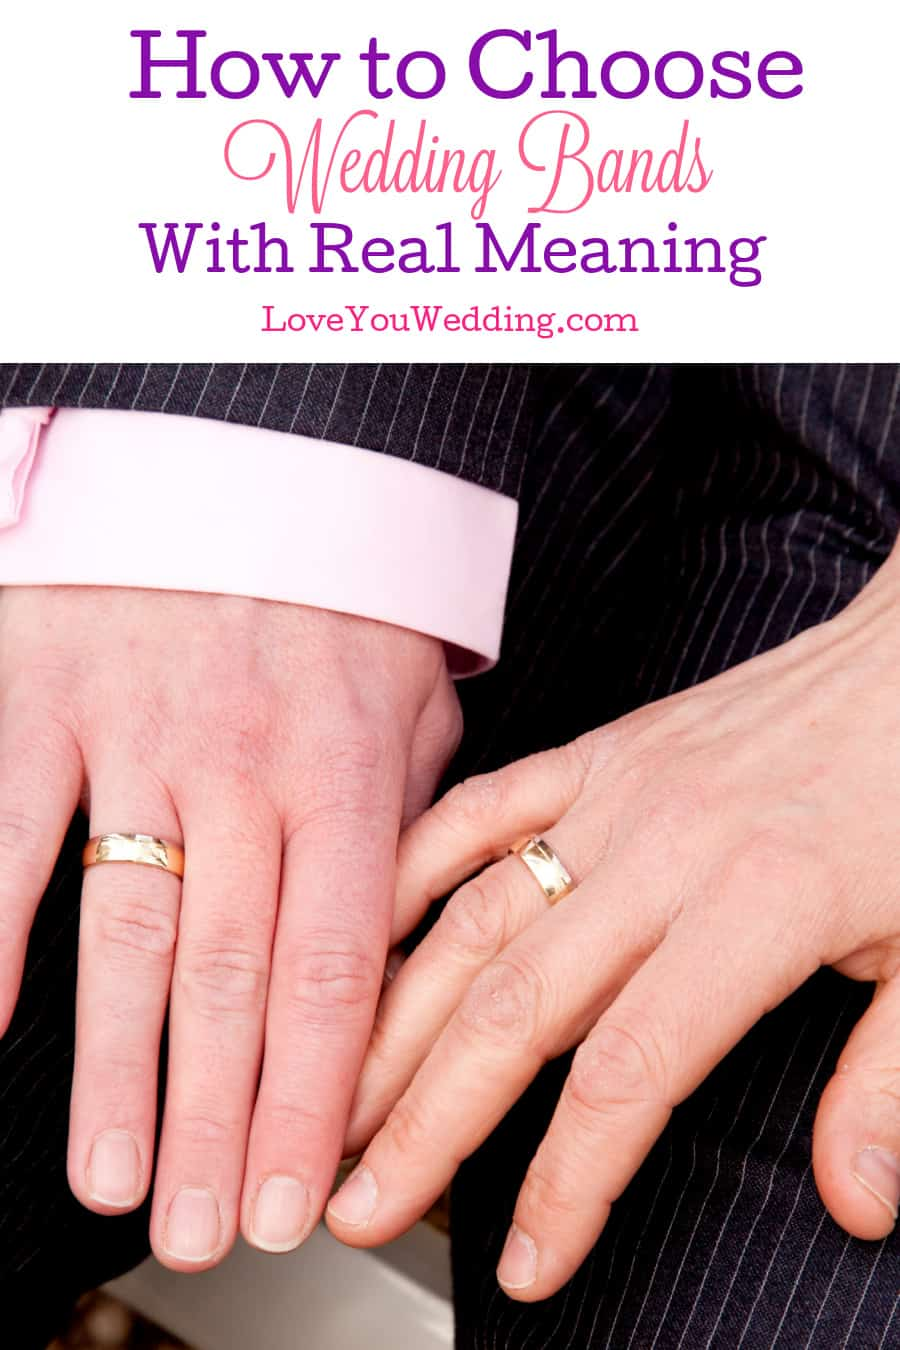 You'll wear your ring every day of your life, so it's important to choose wedding bands with meanings for you and your partner. Find out how!